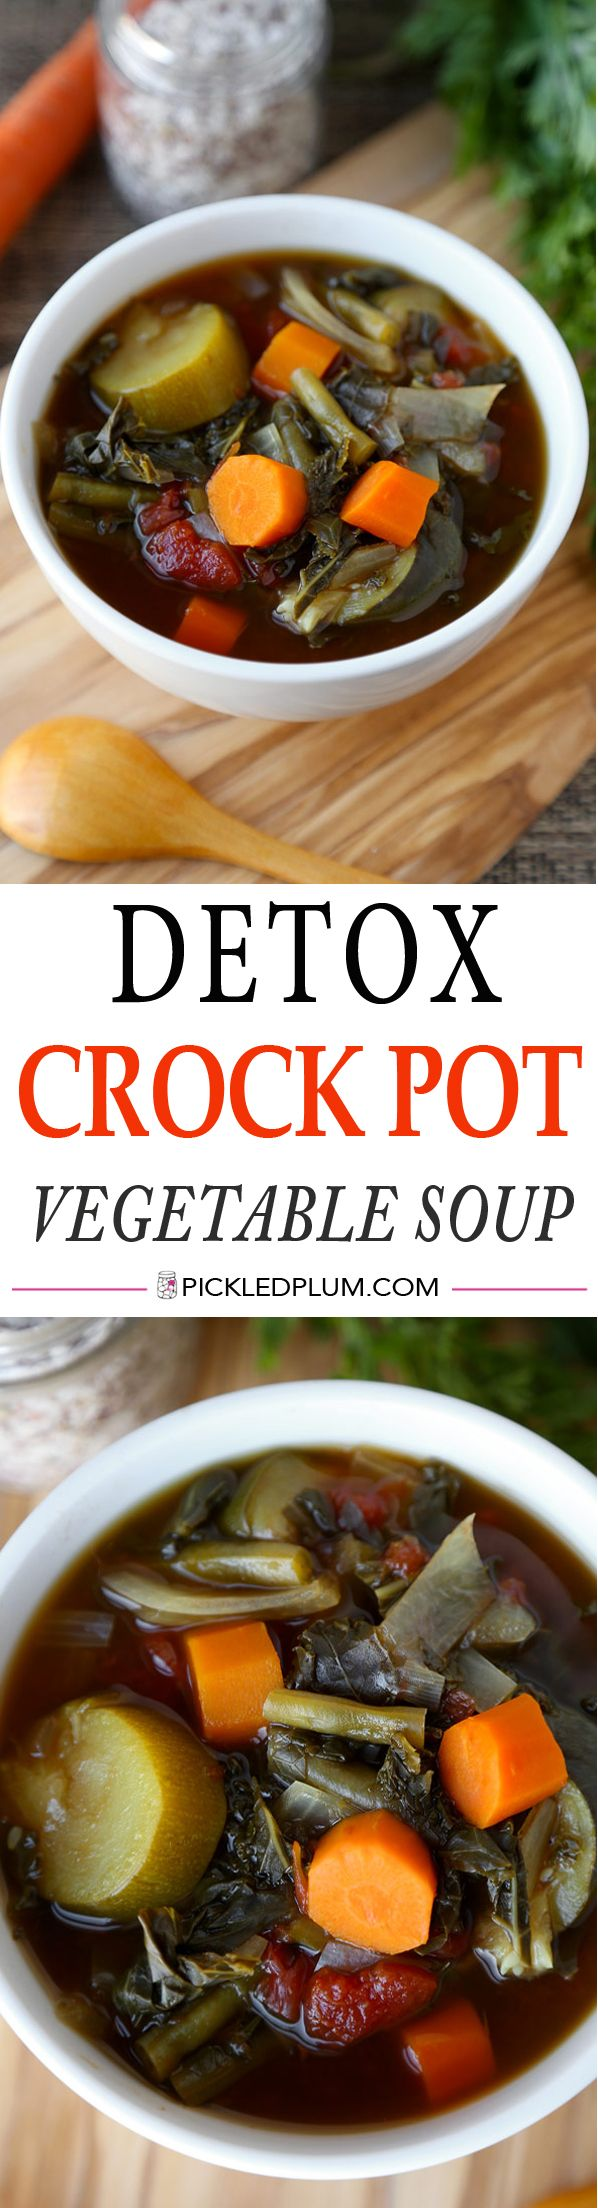 The key to consistently staying slim? Balance and portion control. No need to go on these extreme diets (they never work in the long run anyway). This holiday season, enjoy yourself but also be good to yourself with lighter and healthier options - Keep this Detox Crock Pot Vegetable Soup in individual portions in your freezer and take one out whenever you've overindulged. http://www.pickledplum.com/detox-crock-pot-vegetable-soup/